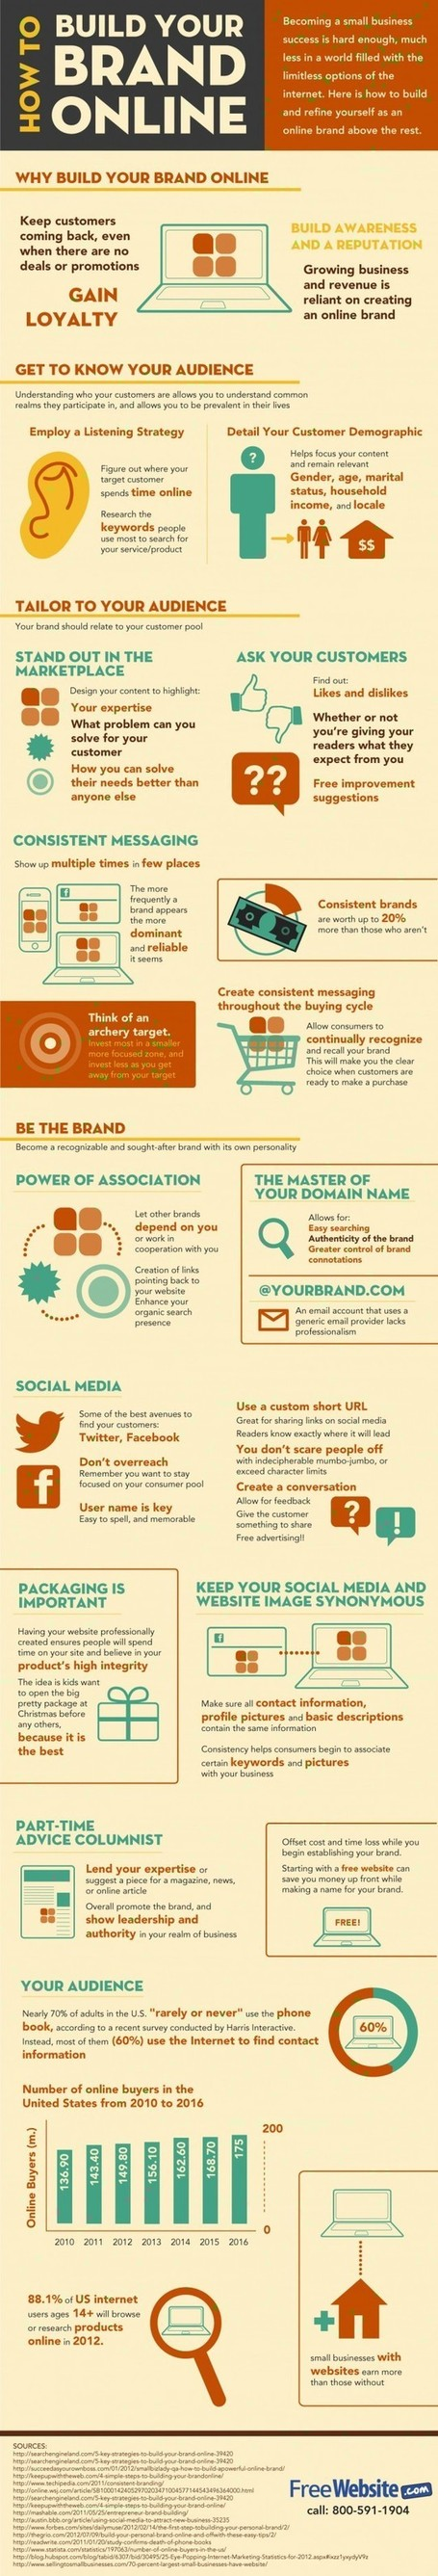 Why You Need to Build Your Brand Online [infographic] | digitalassetman | Scoop.it